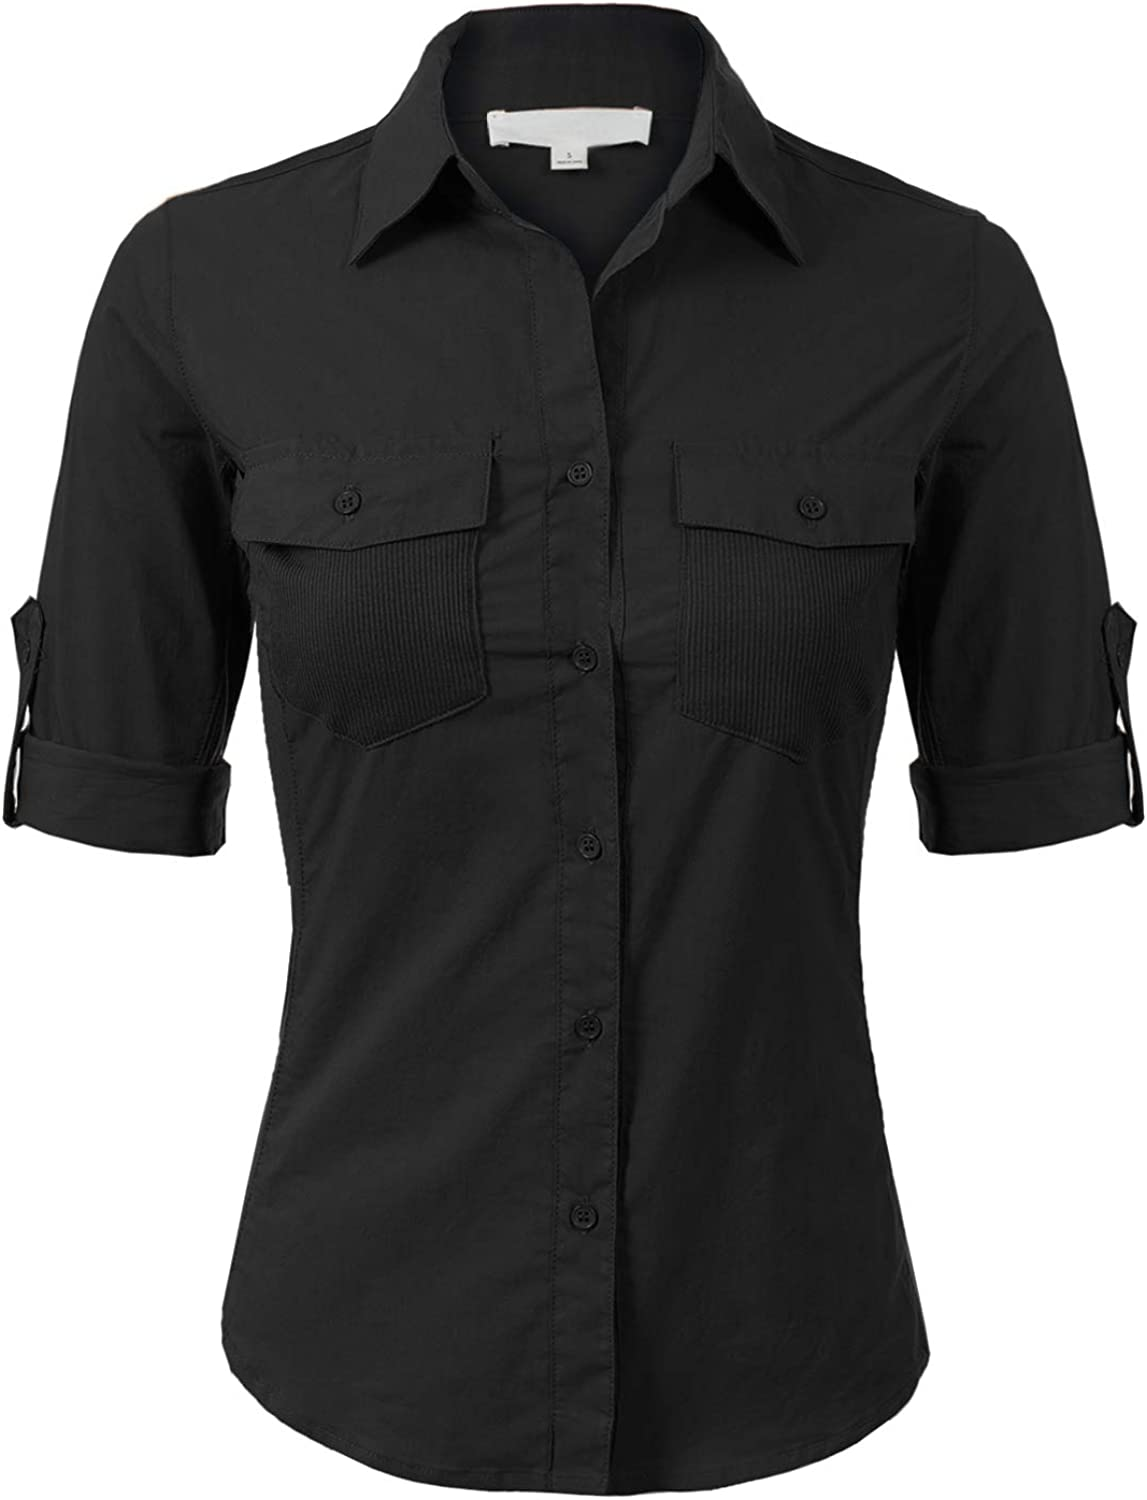 Design by Olivia Women's Solid Cotton Voile Ribbed Pocket and Side Button-Down Shirt